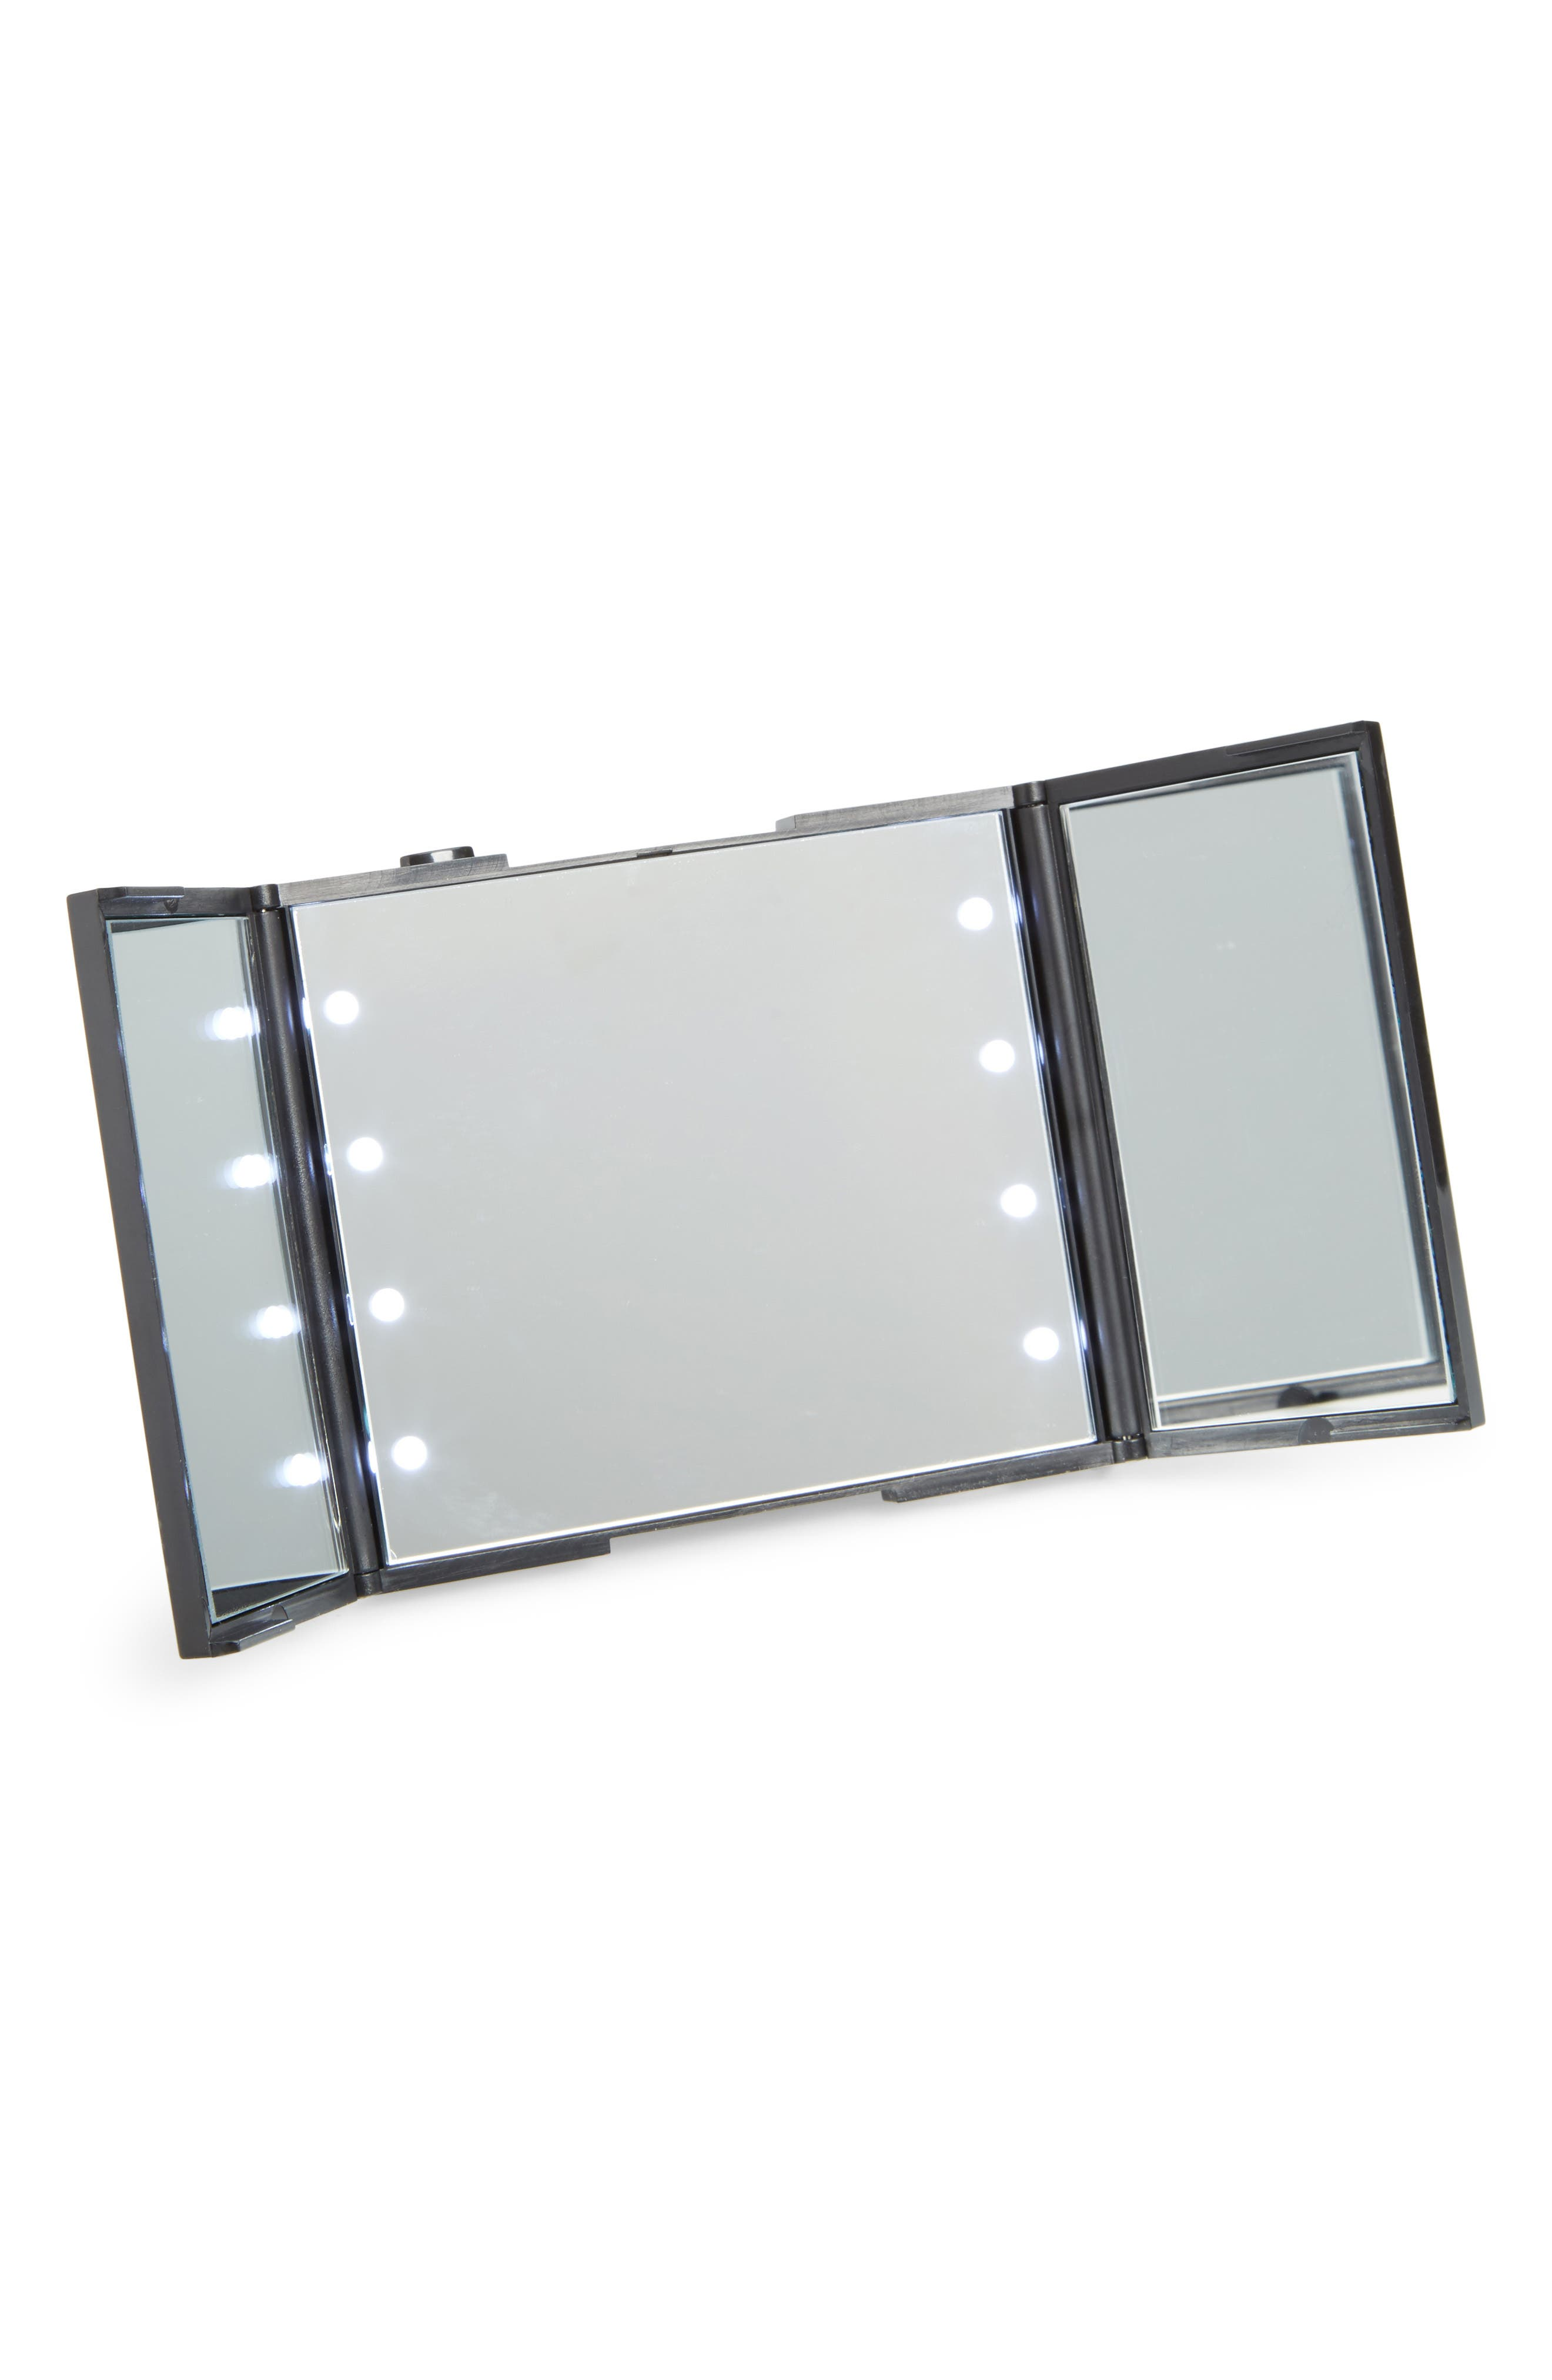 Alternate Image 1 Selected - Impressions Vanity Co. Trifold Compact LED Makeup Mirror with Stand